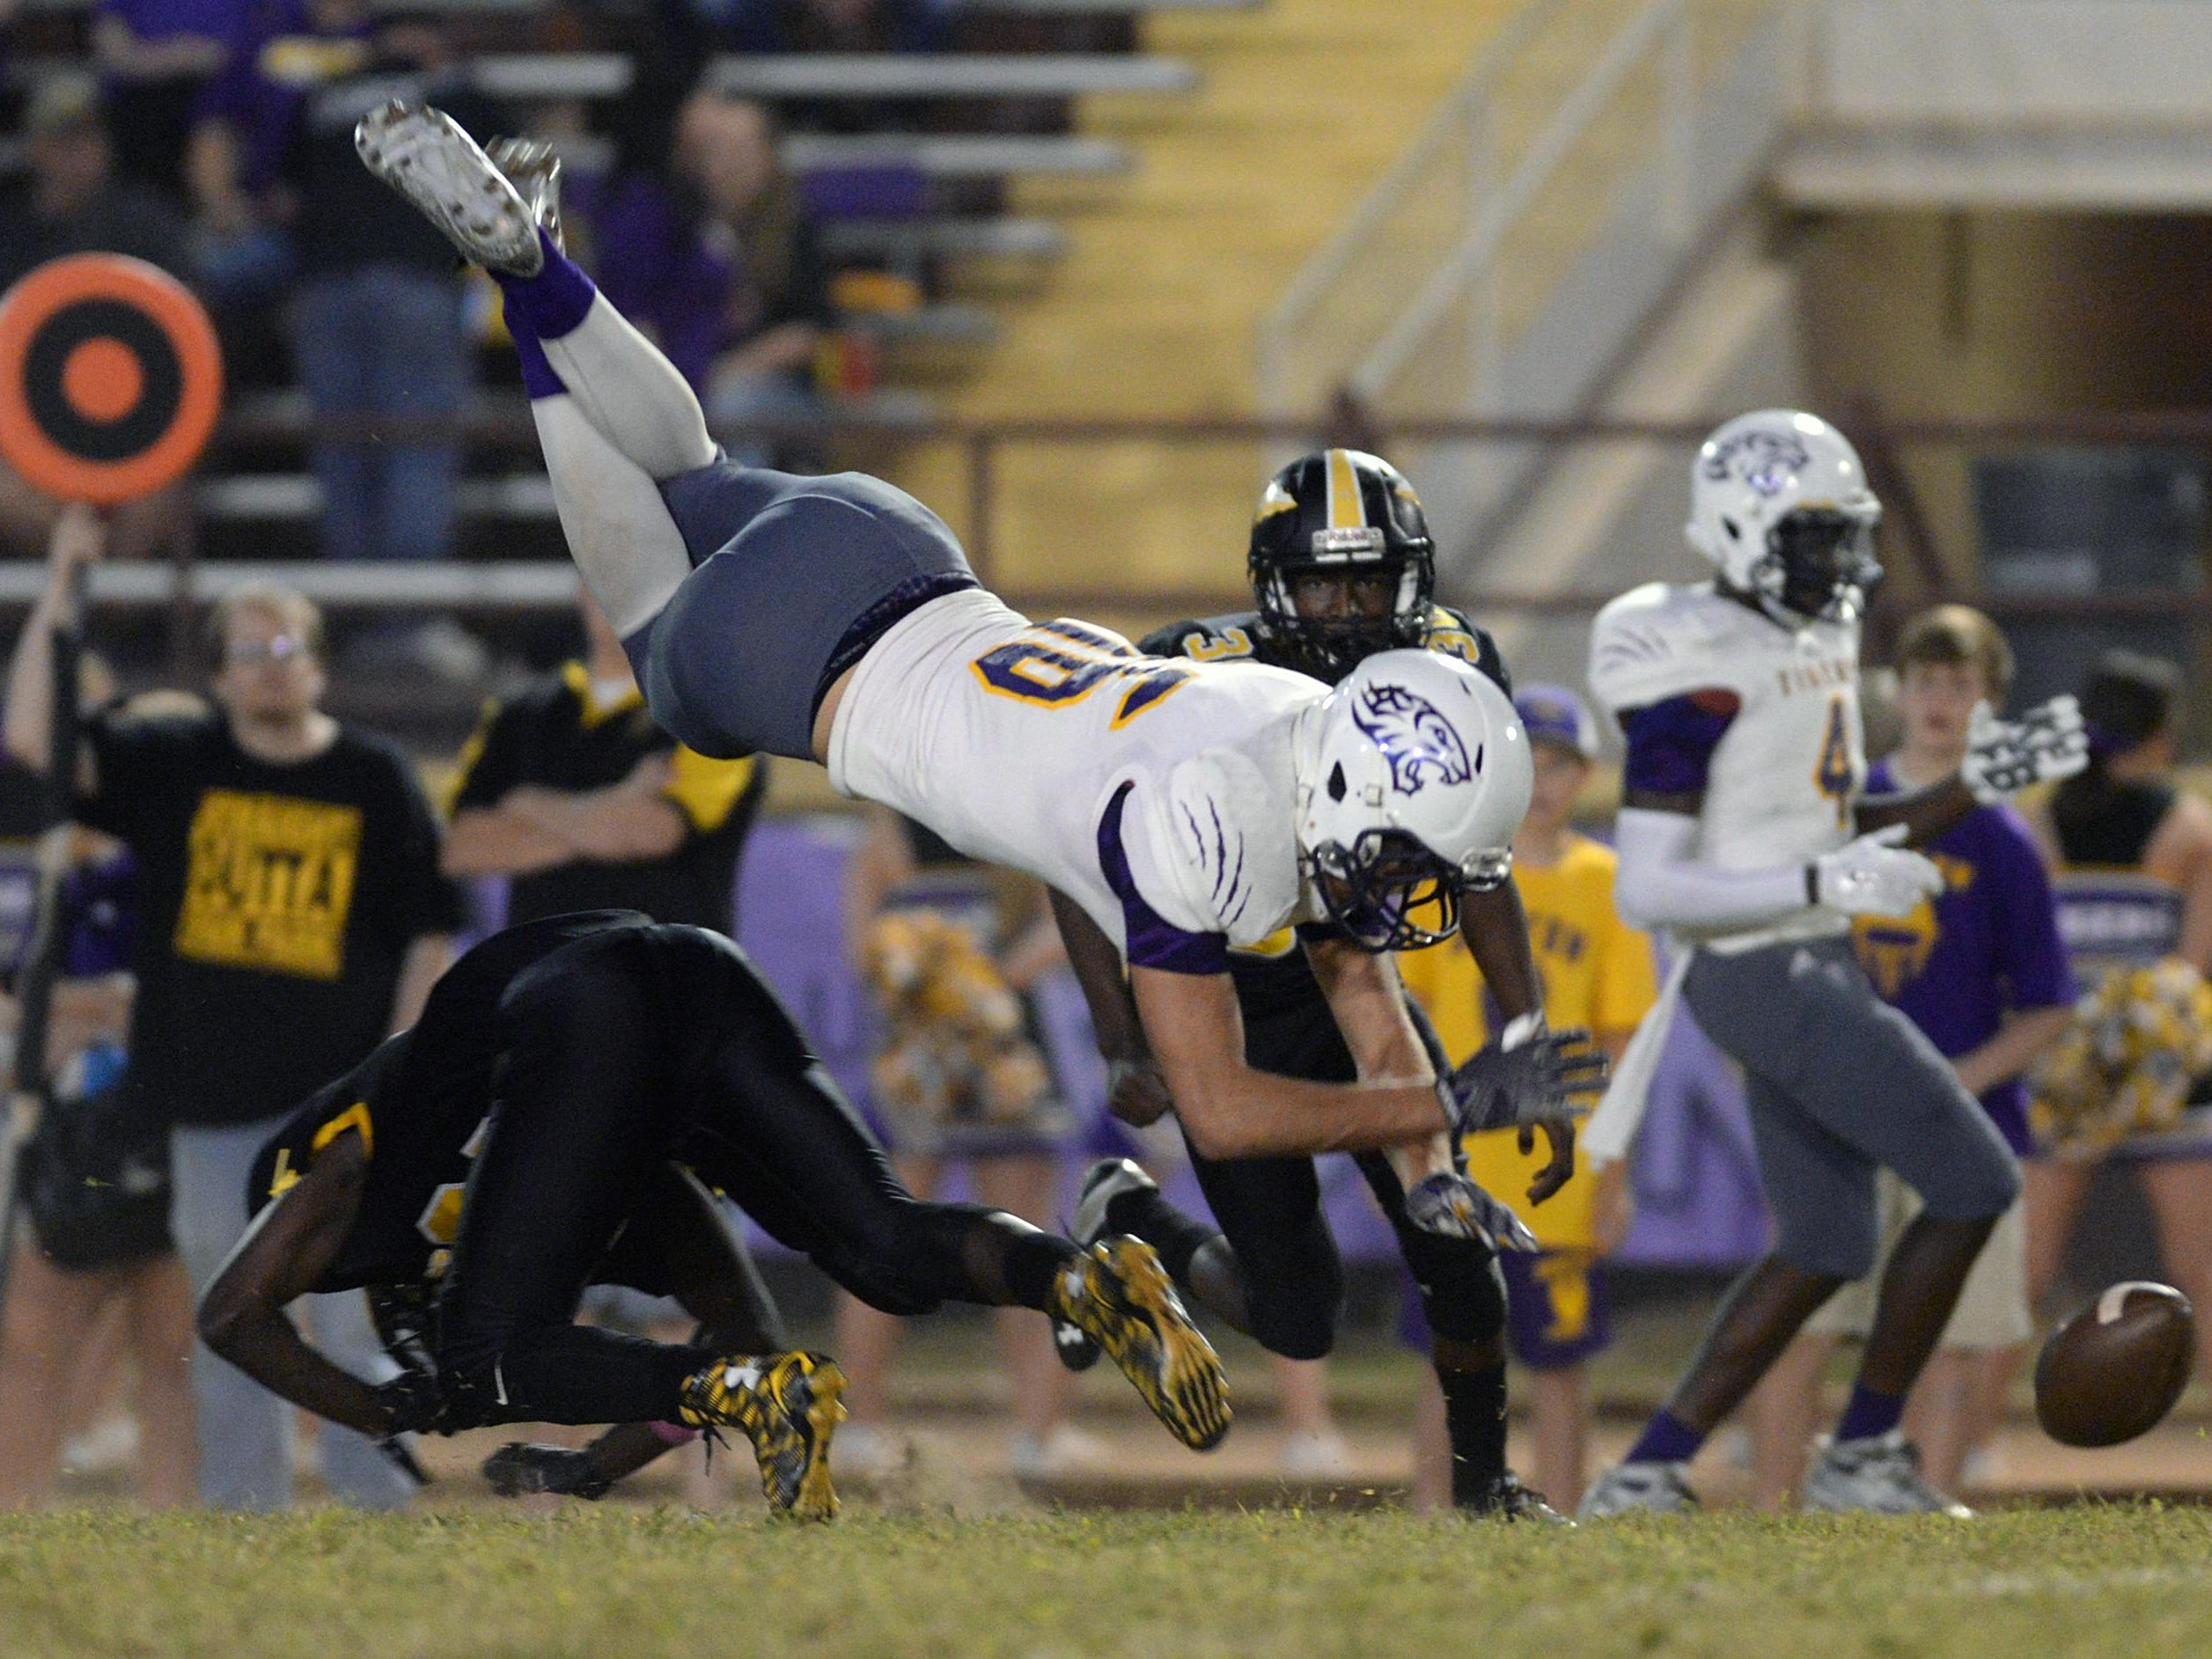 Fair Park's Latrevione Davis upends John Westmoreland of Benton, breaking up a pass attempt in the first quarter of their game on Thursday night at BTW. Benton won 42-22.